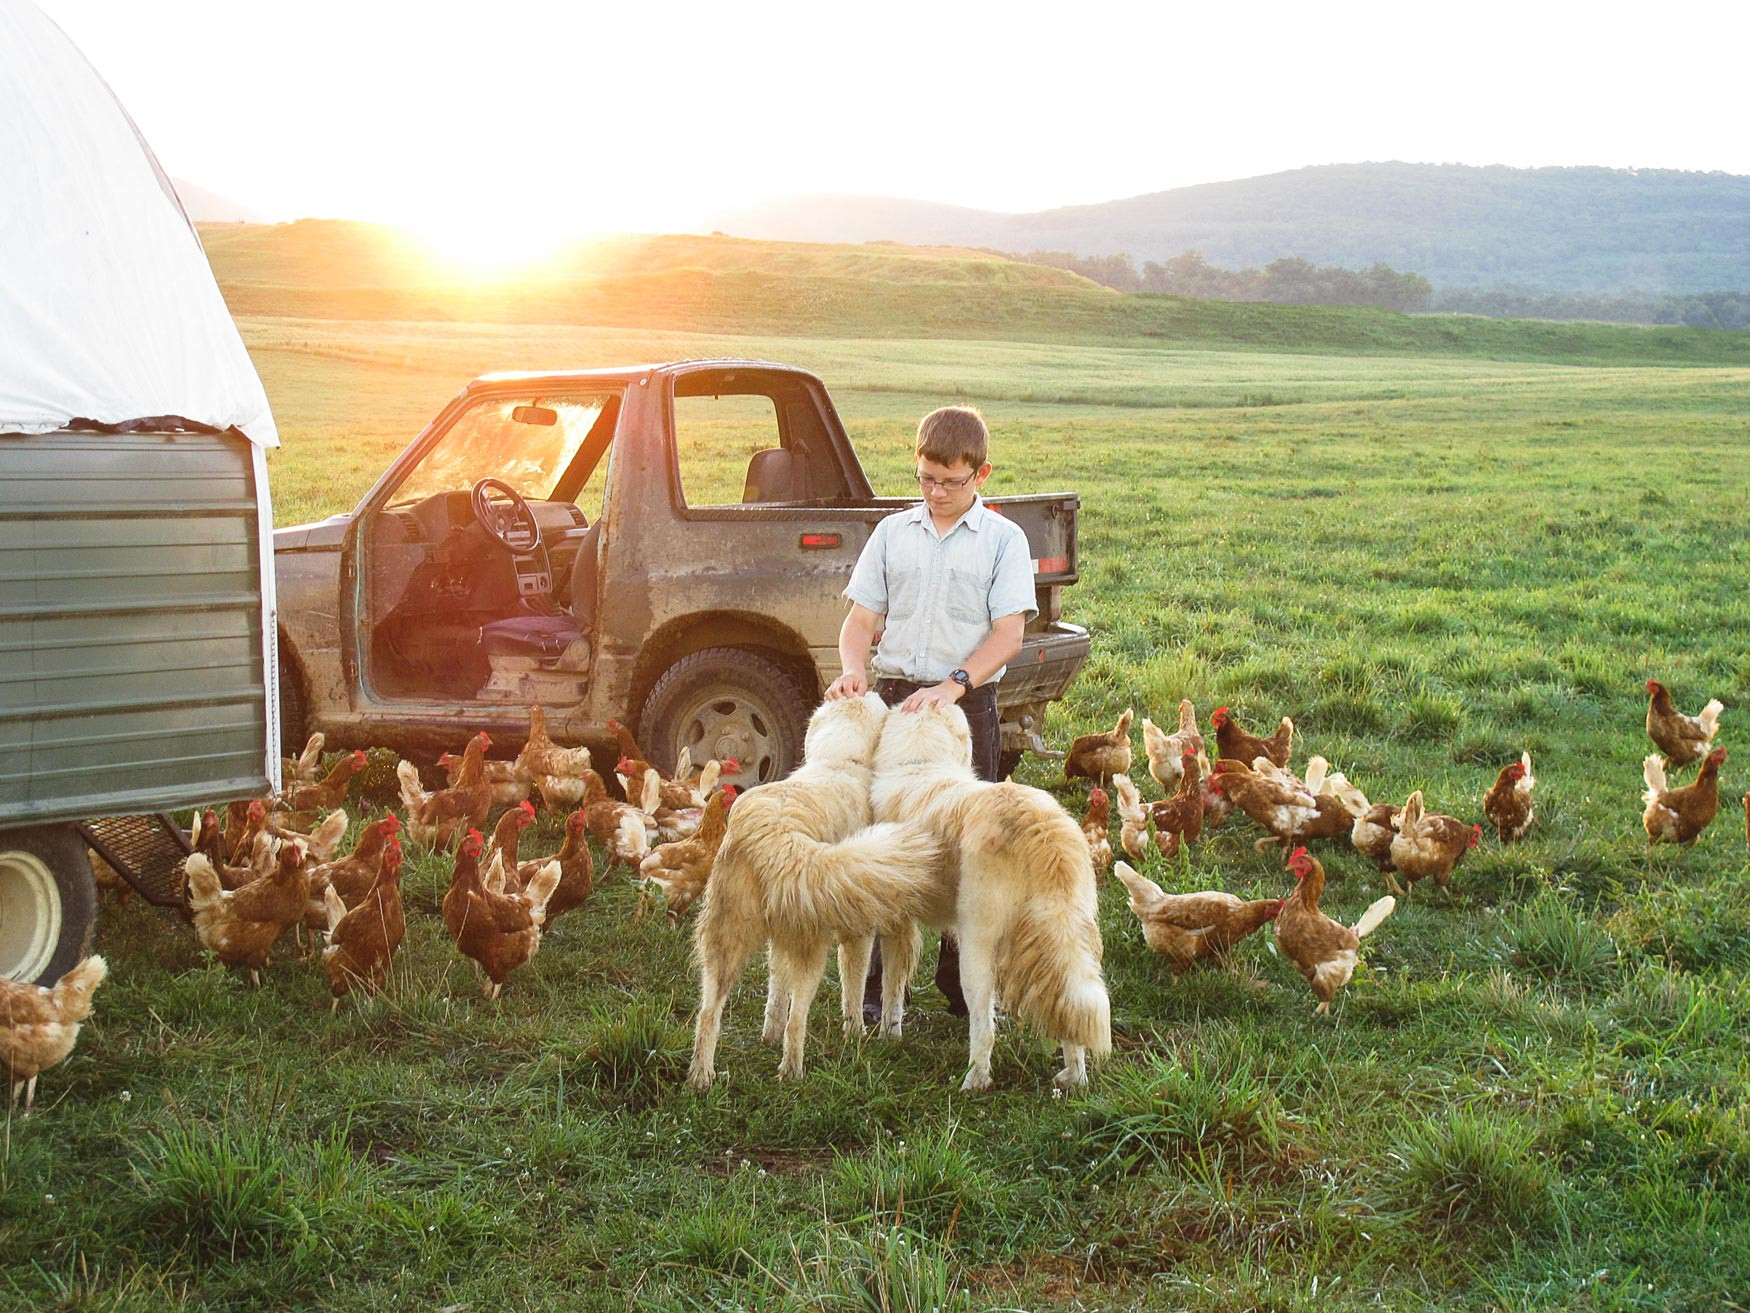 Laying-Hens-&-Guard-Dogs.jpg